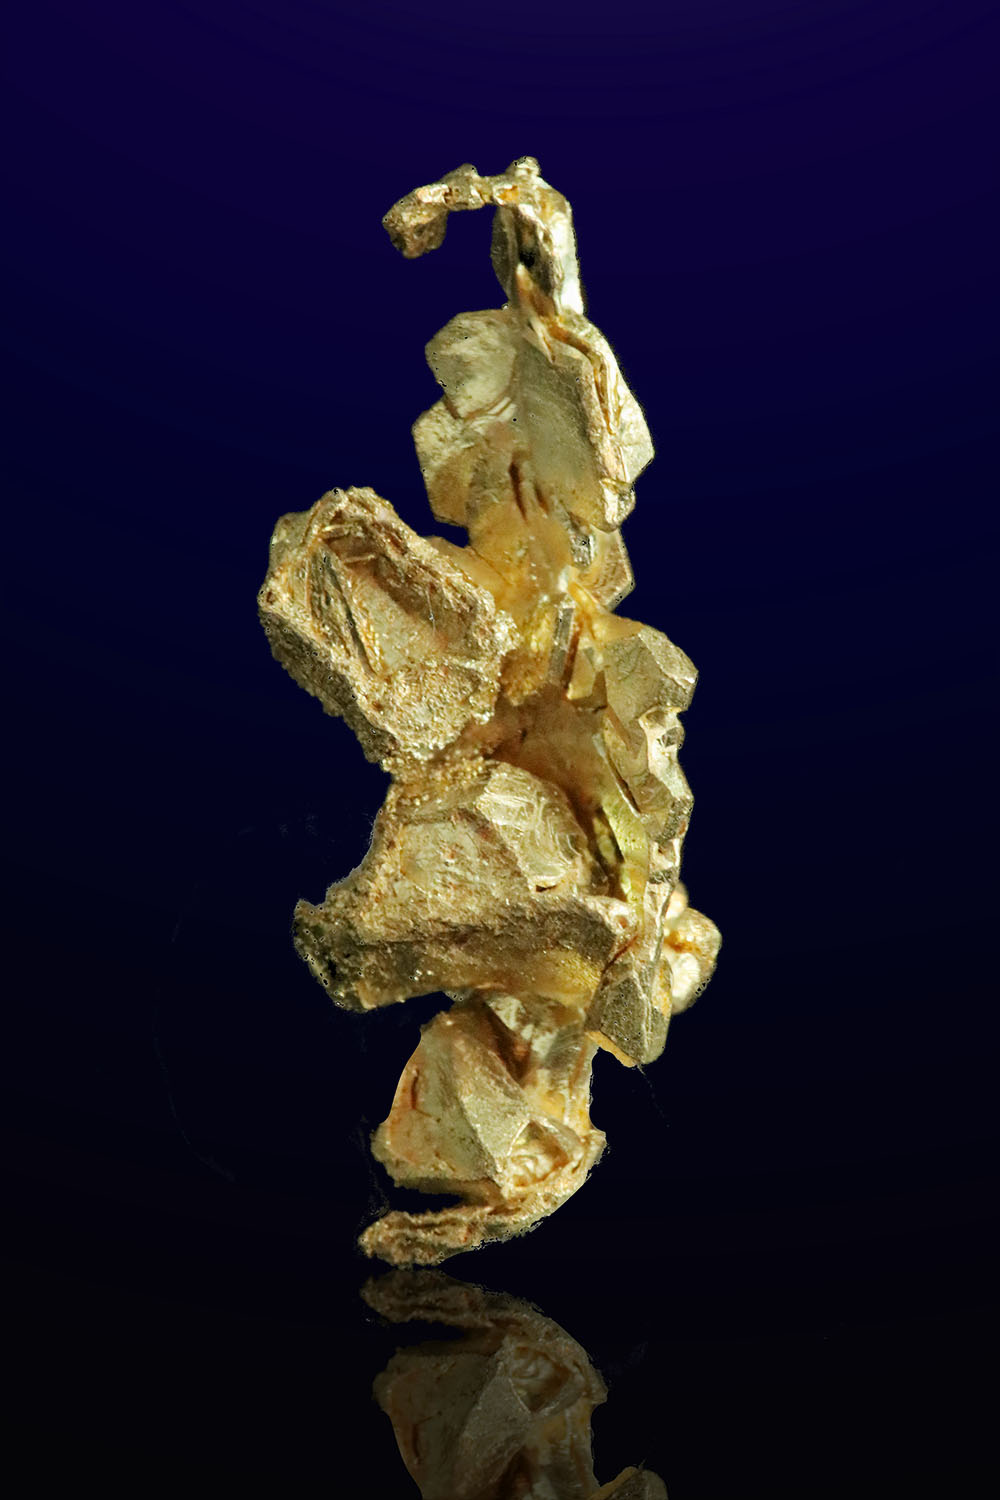 Long and Faceted - Natural Gold Crystal from Mt. Kare, PNG